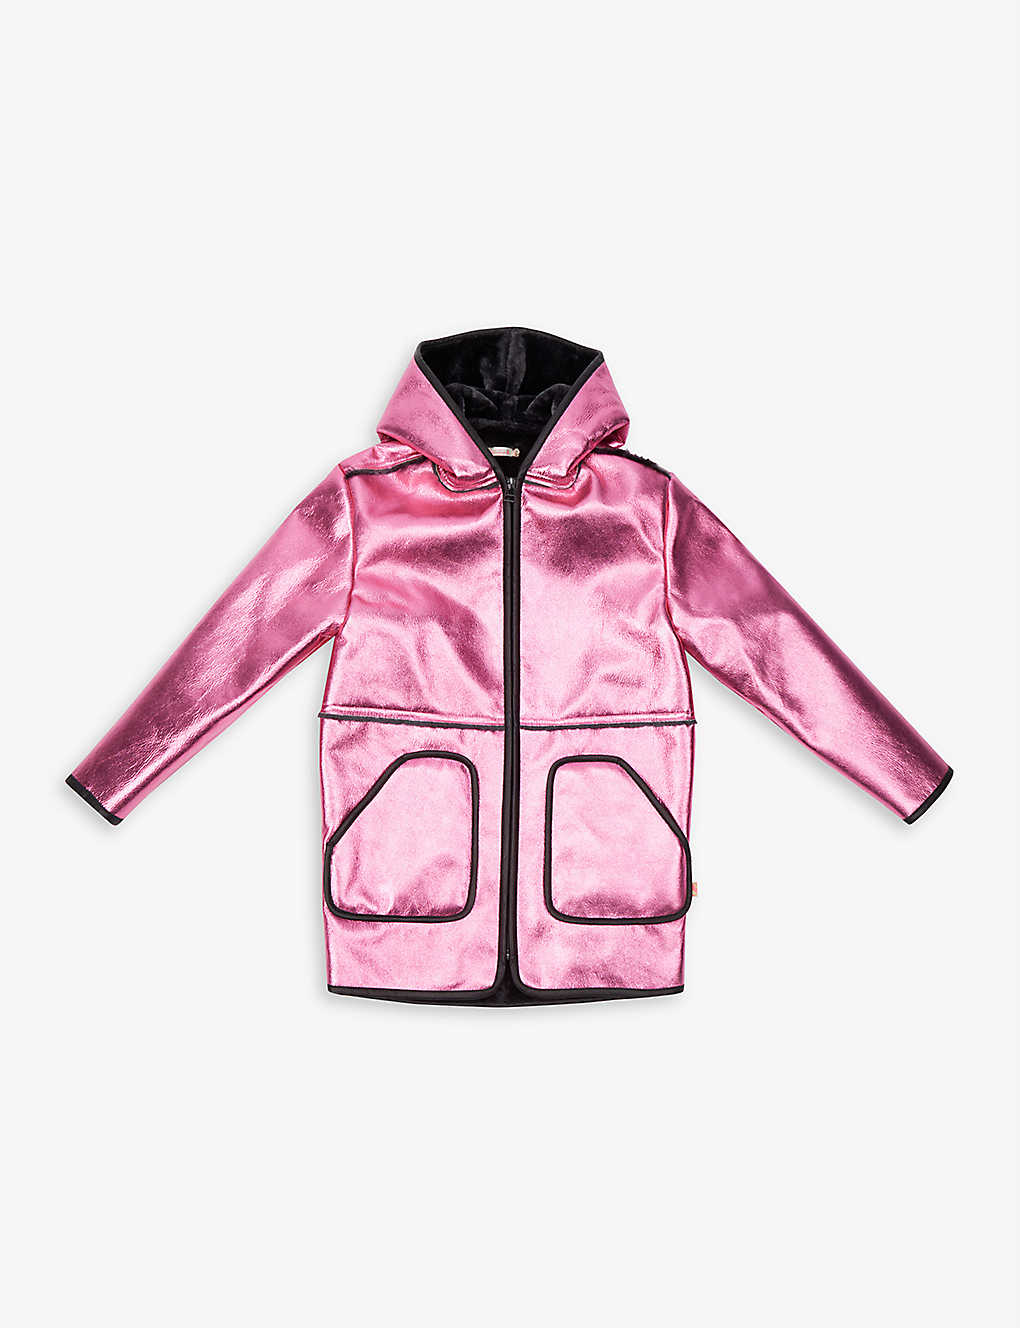 BILLIE BLUSH: Hooded metallic faux-shearling coat 4-12 years